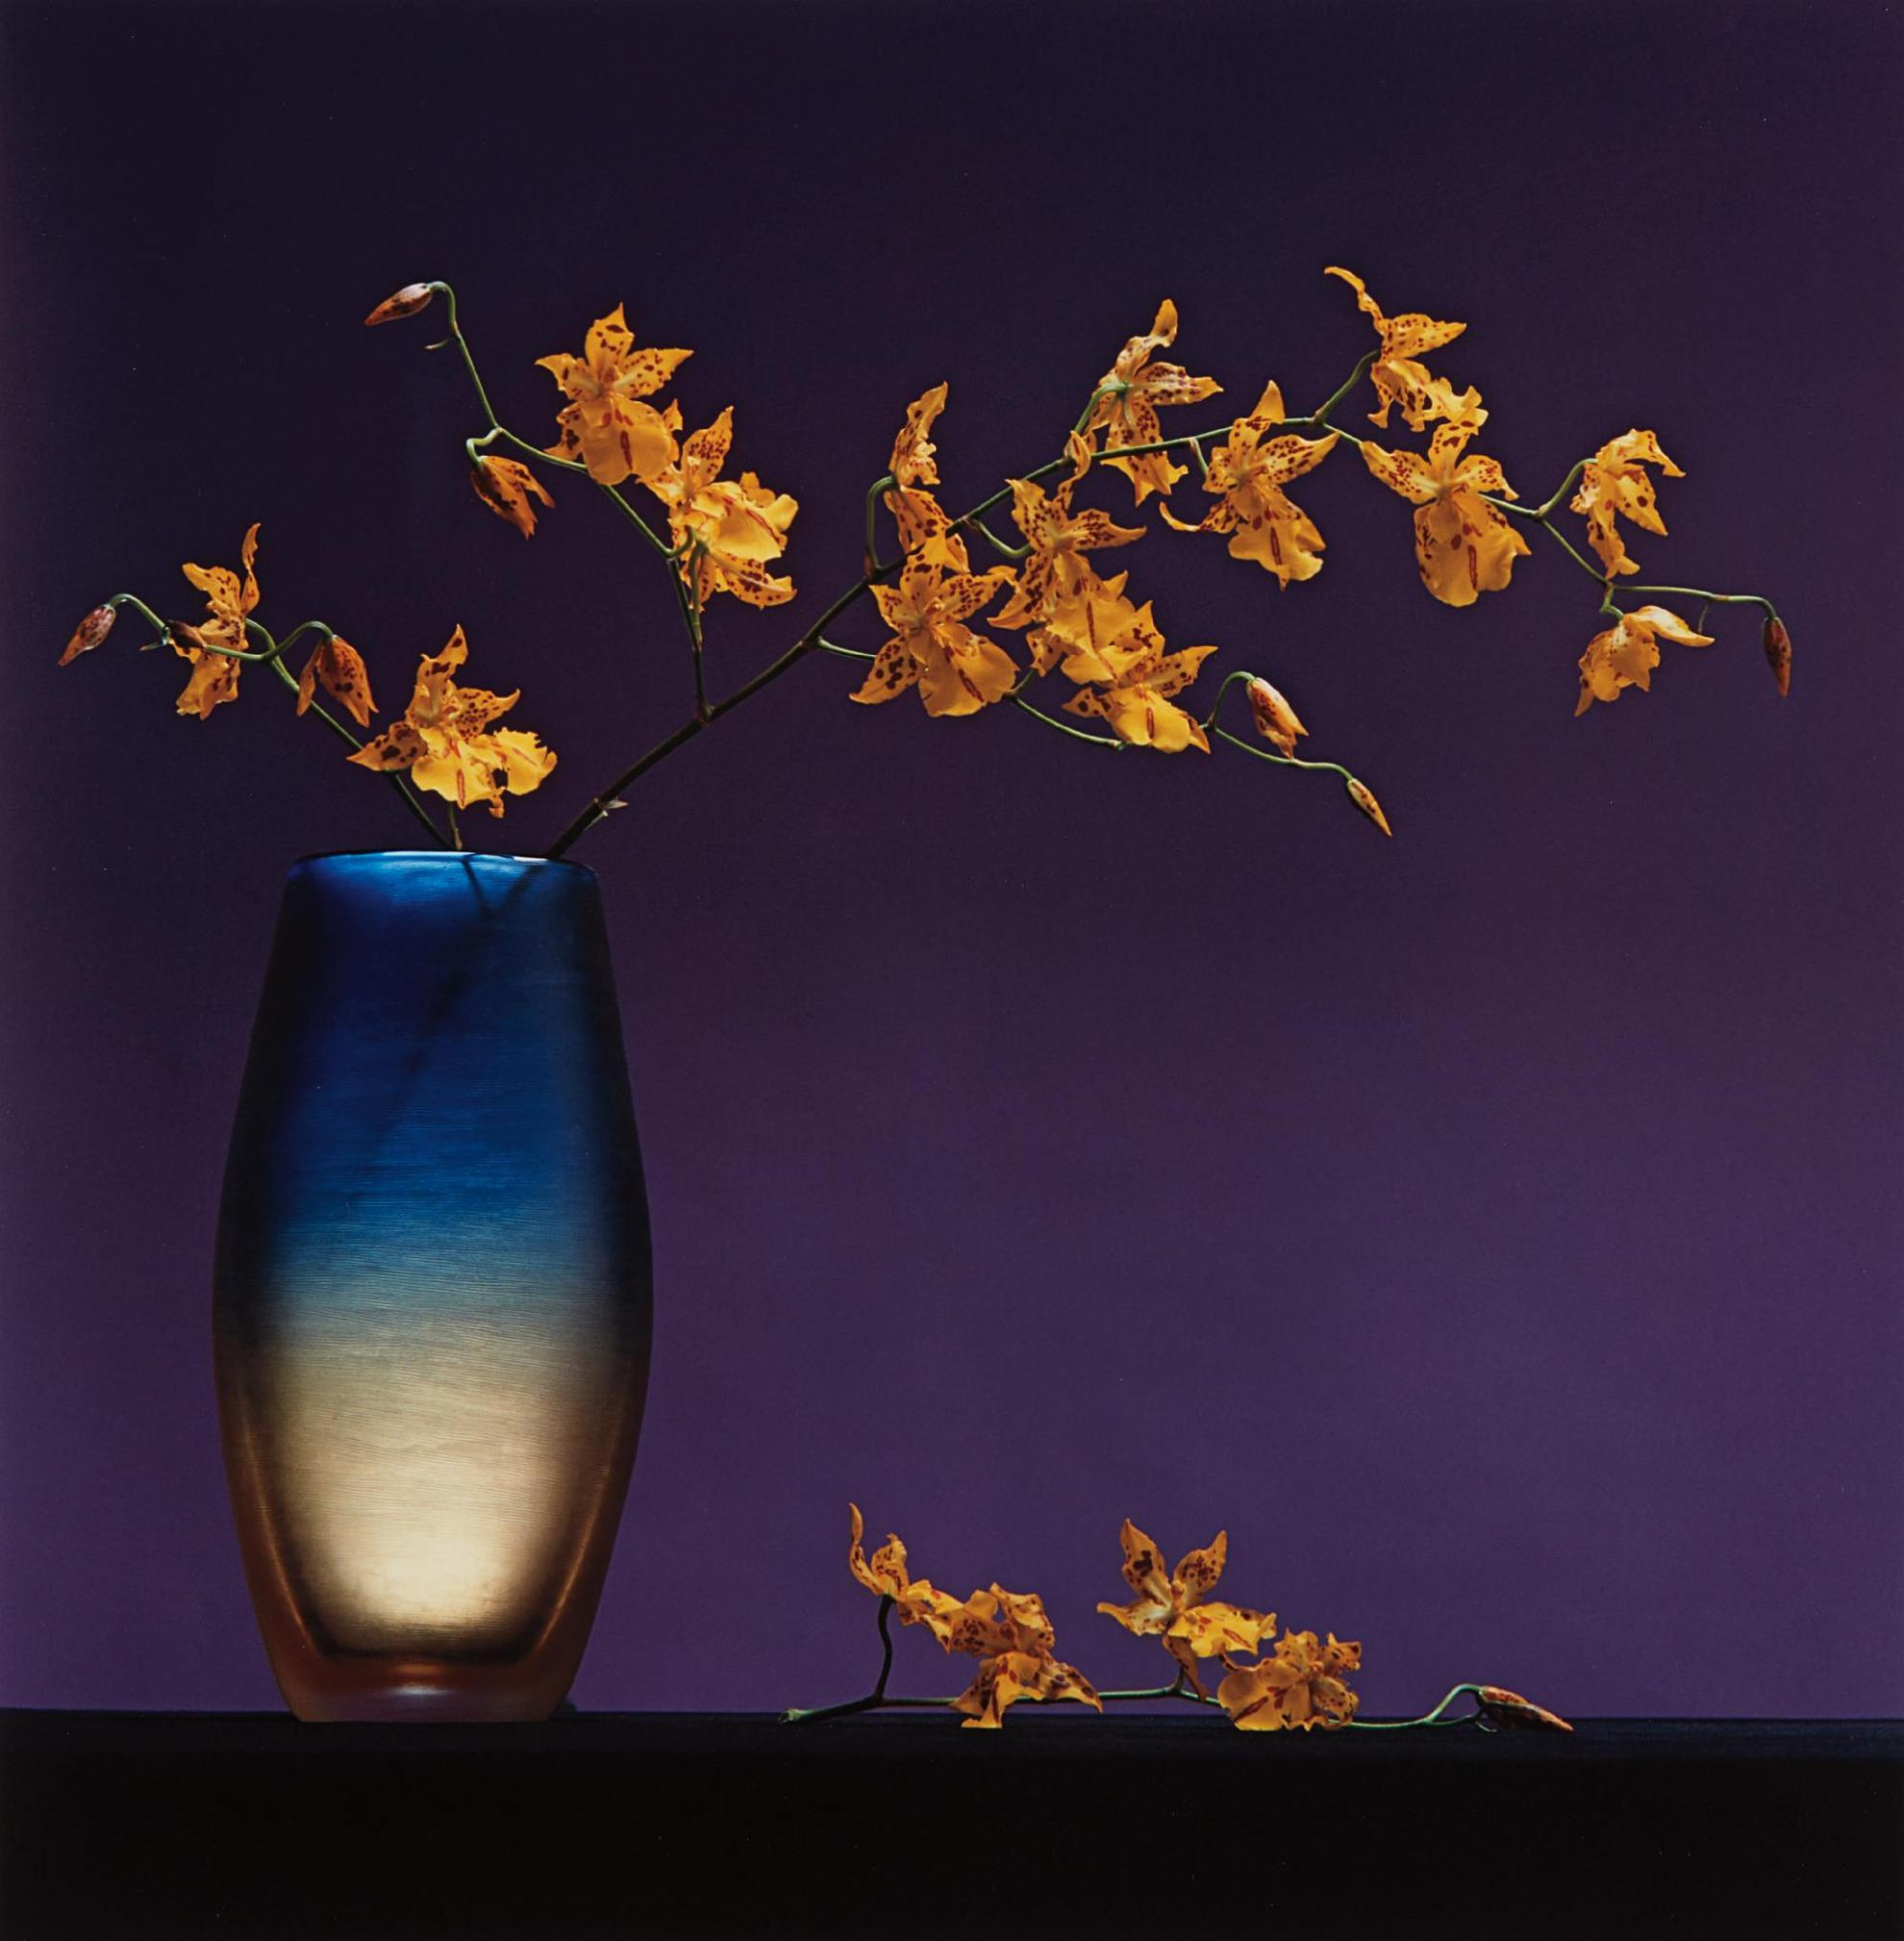 Robert Mapplethorpe-Flowers In Vase-1985